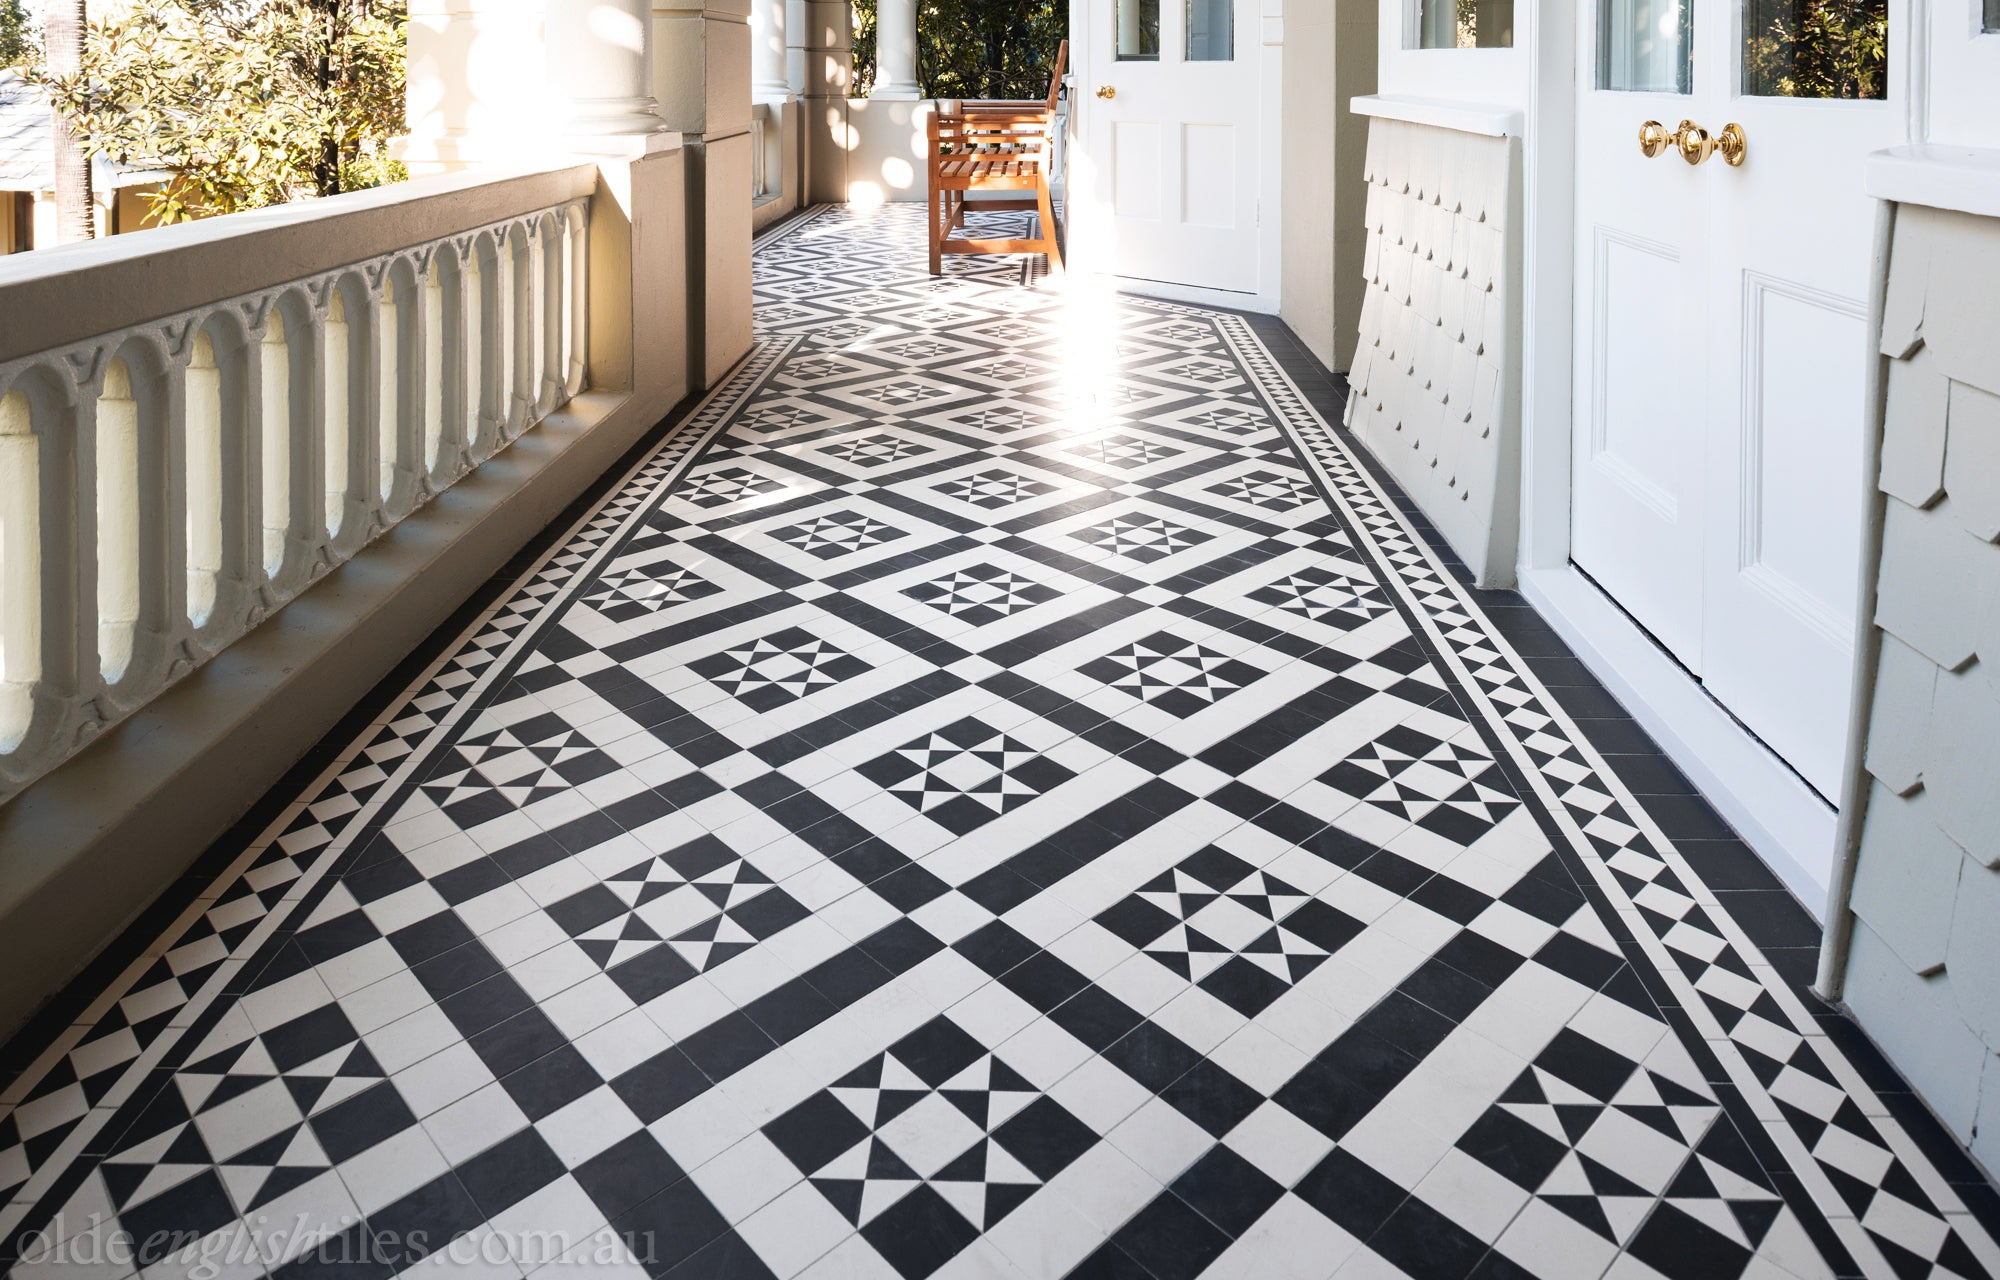 Monochrome Tile Patterns Olde English Tiles Sydney Melbourne